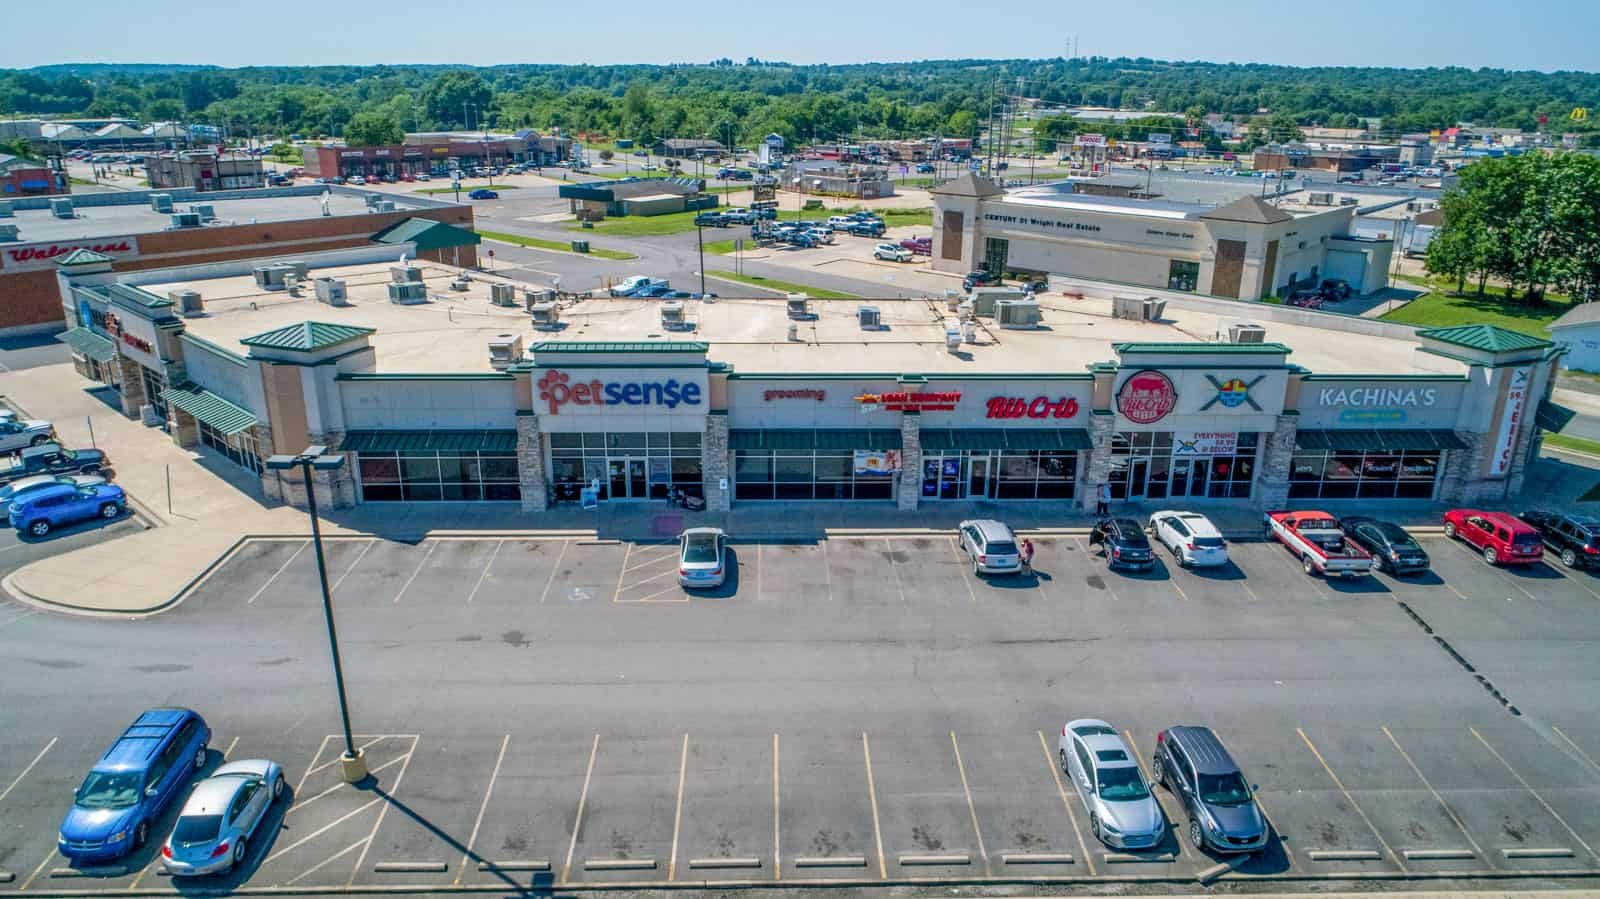 drone photo of shopping plaza in Ohio